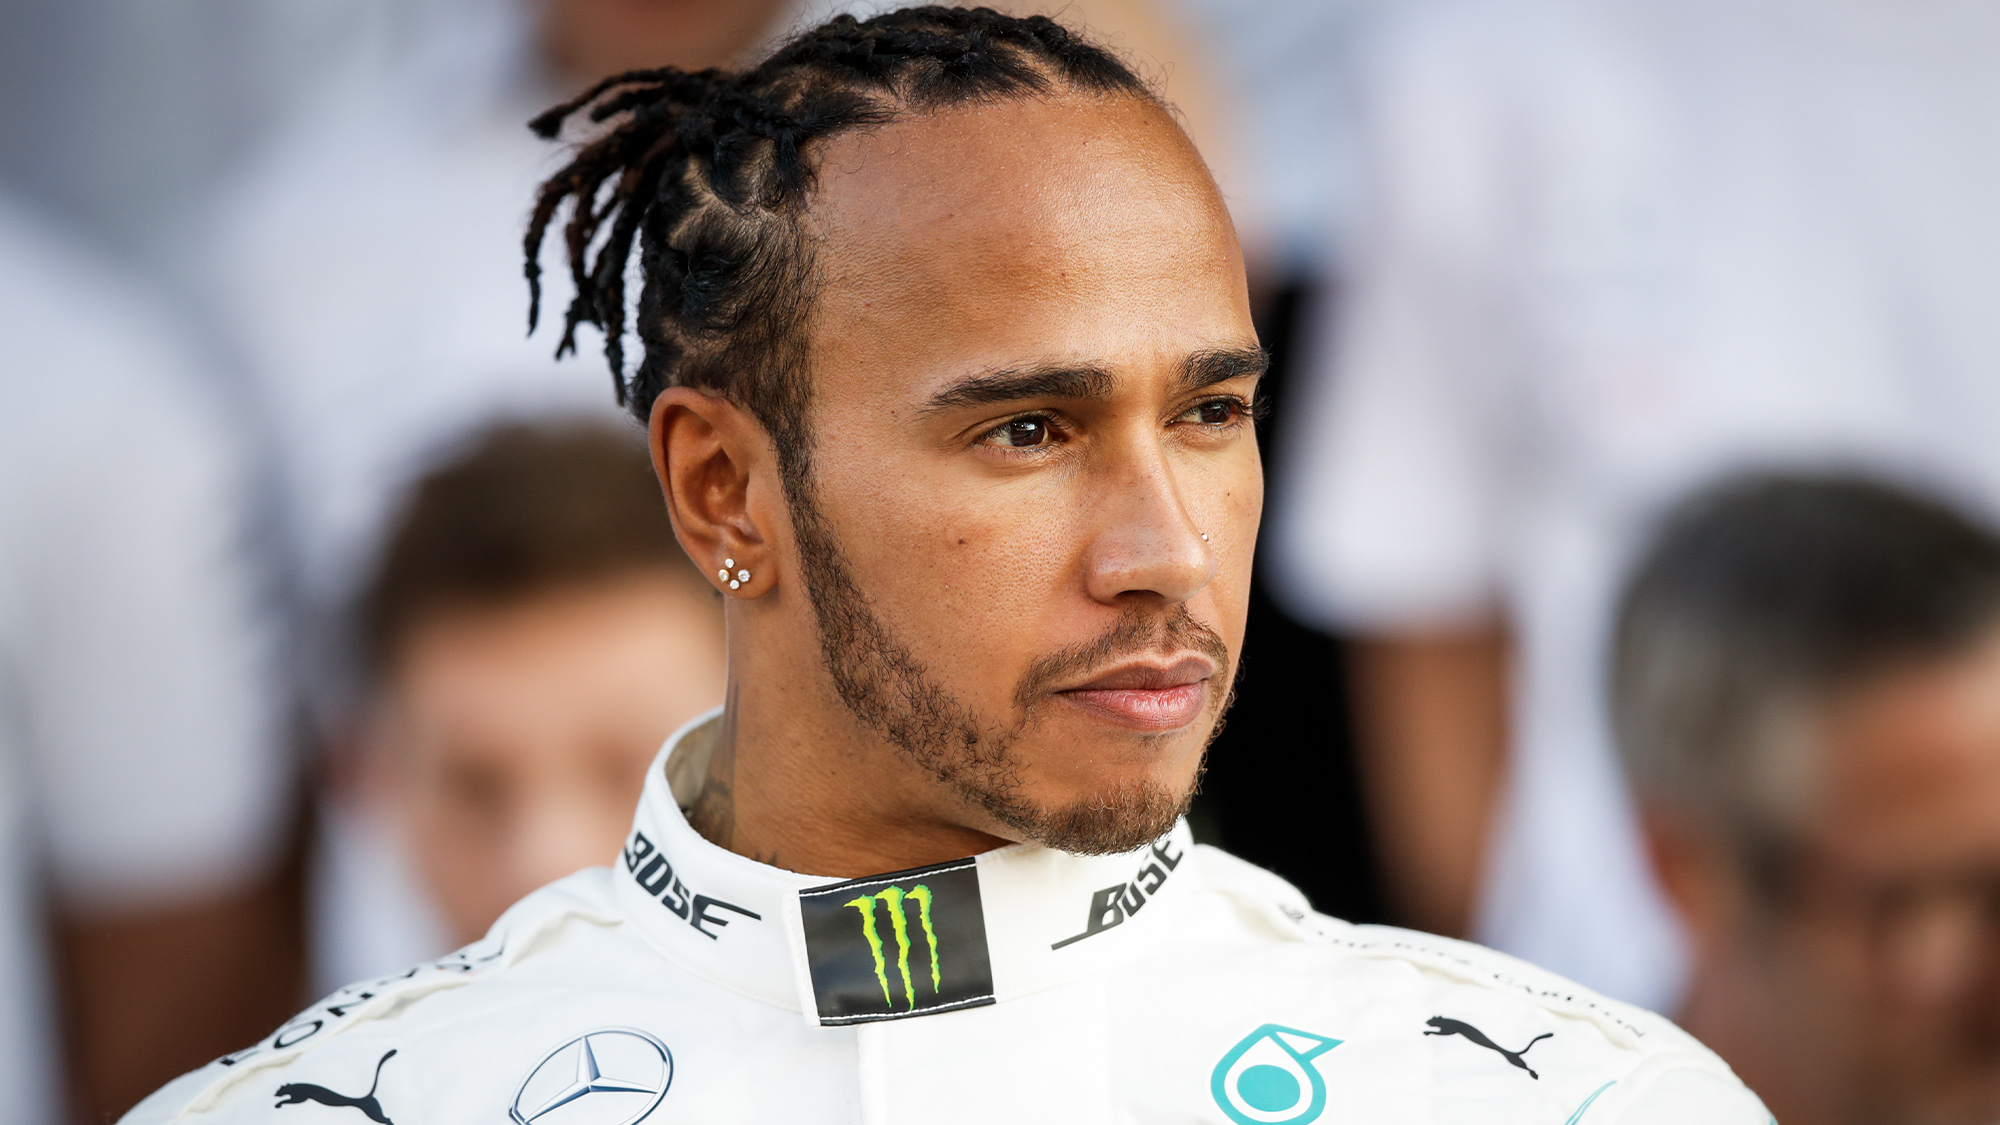 Hamilton: 'Ecclestone comments show why F1 didn't tackle racism in the past'